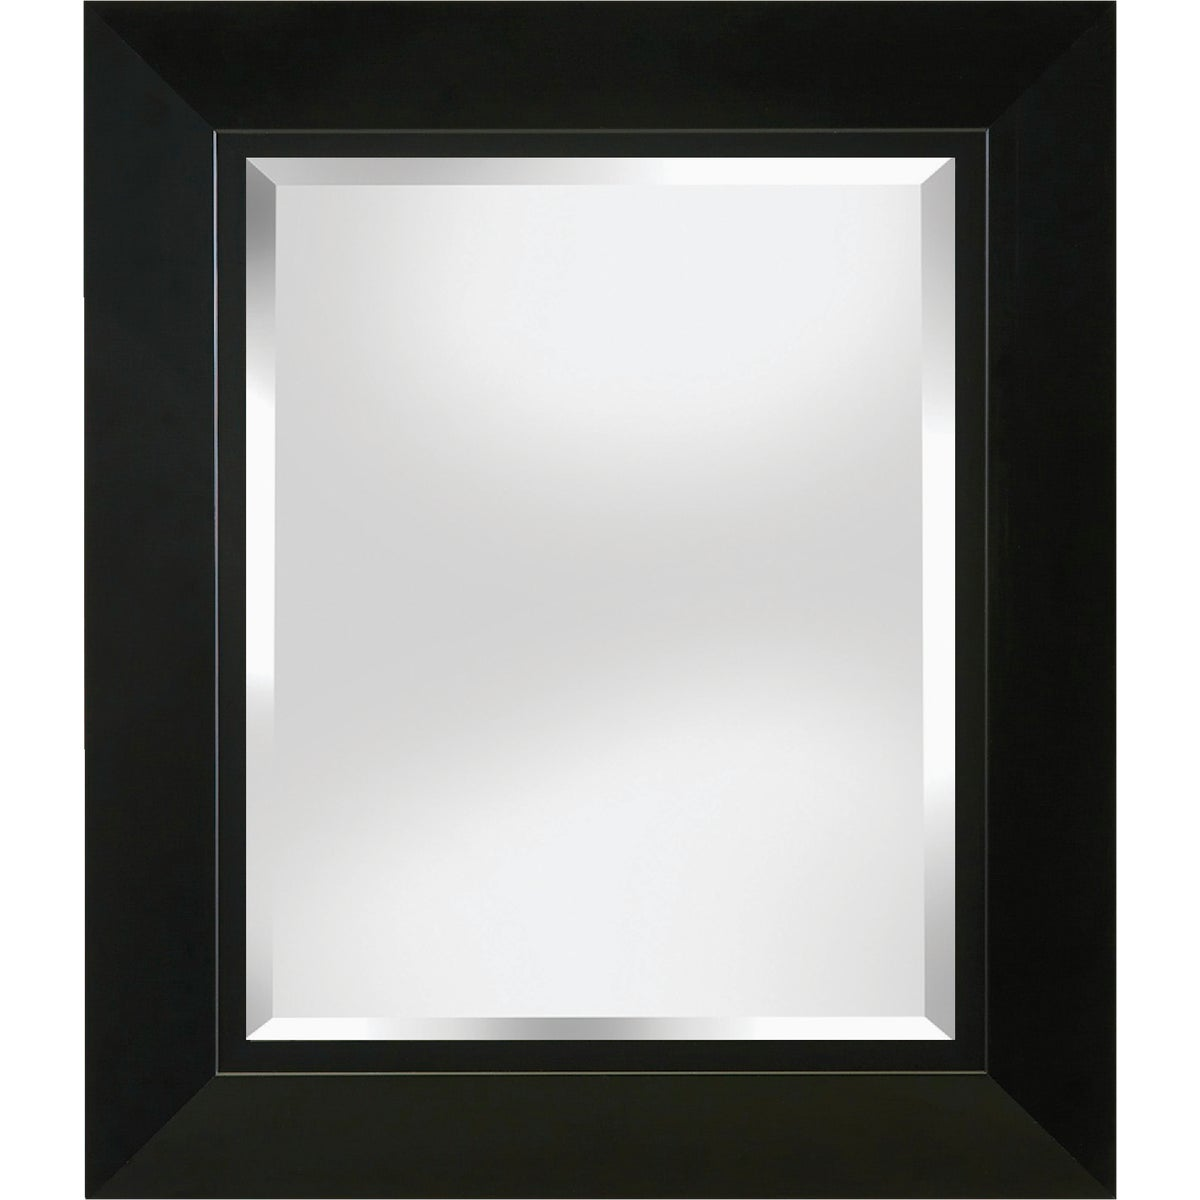 SLCE BLK ZEN WALL MIRROR - 20-2461 by Home Decor Innovatns